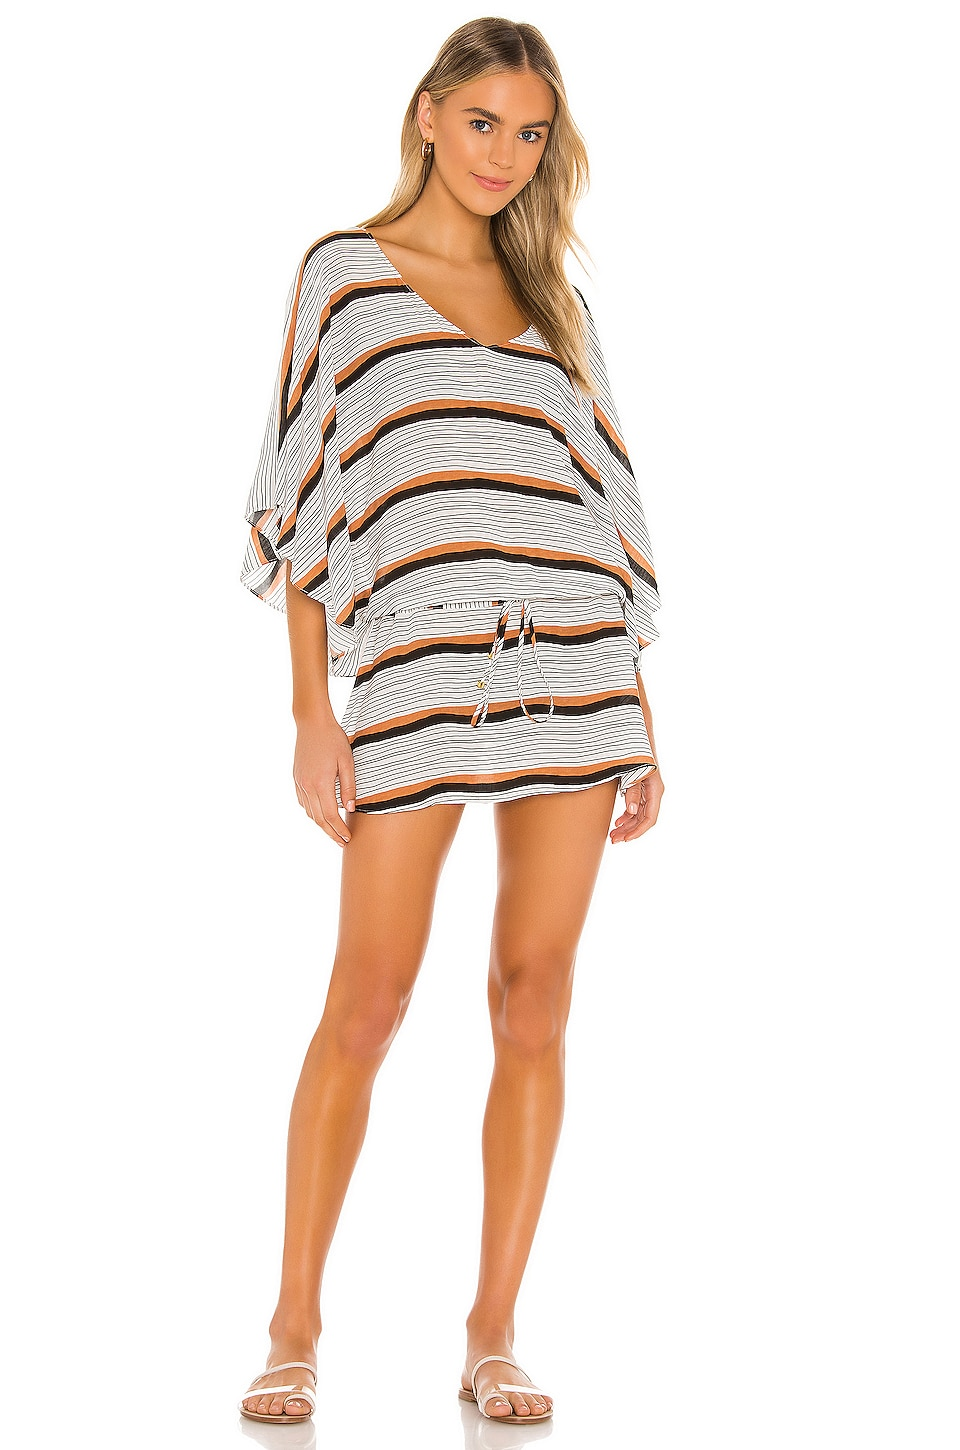 Vix Swimwear Vintage Tunic Dress in Ava